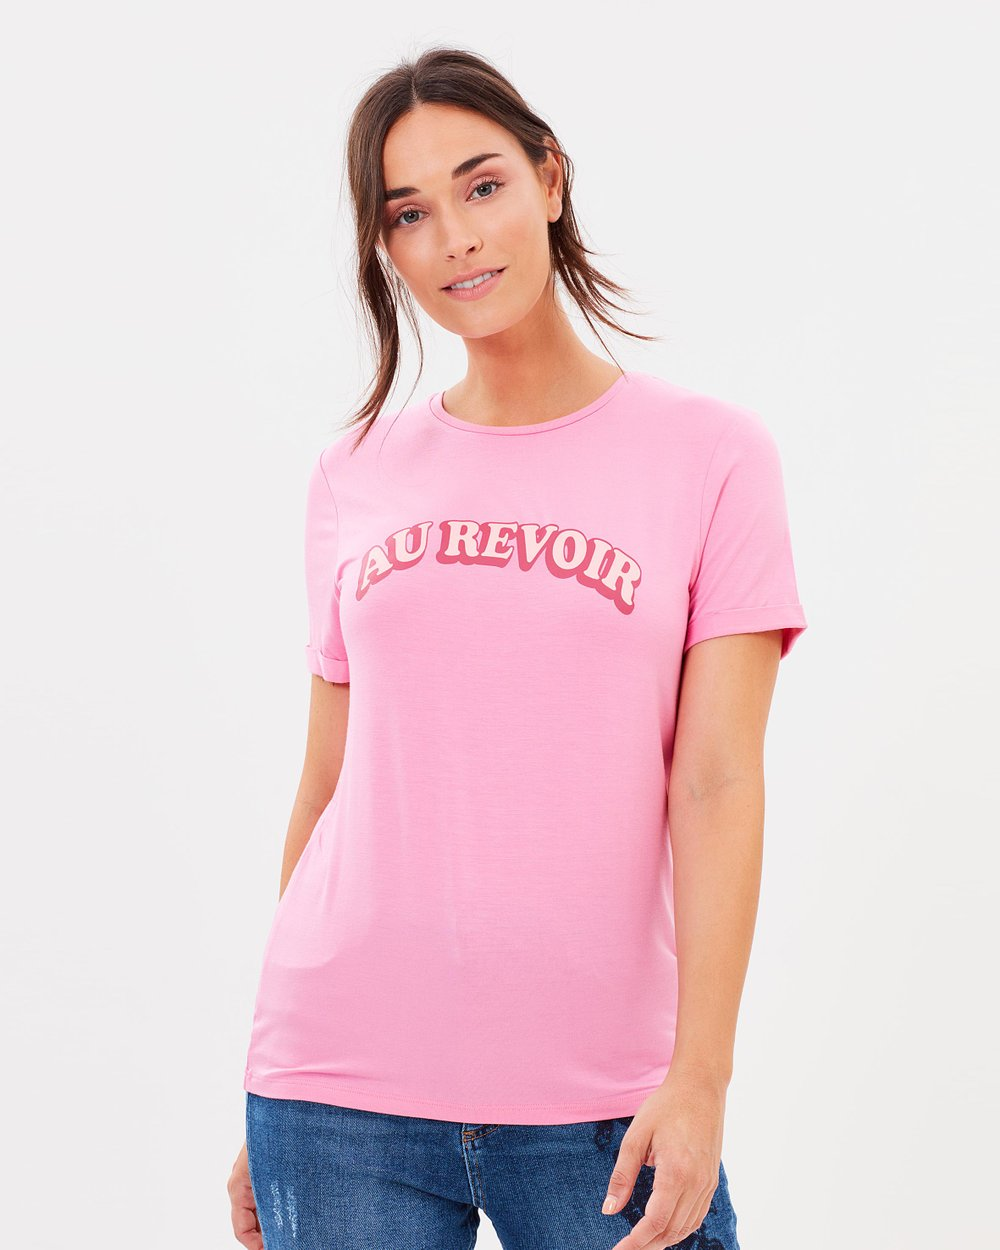 70b2afb9f Au Revoir Tee by Dorothy Perkins Online | THE ICONIC | Australia